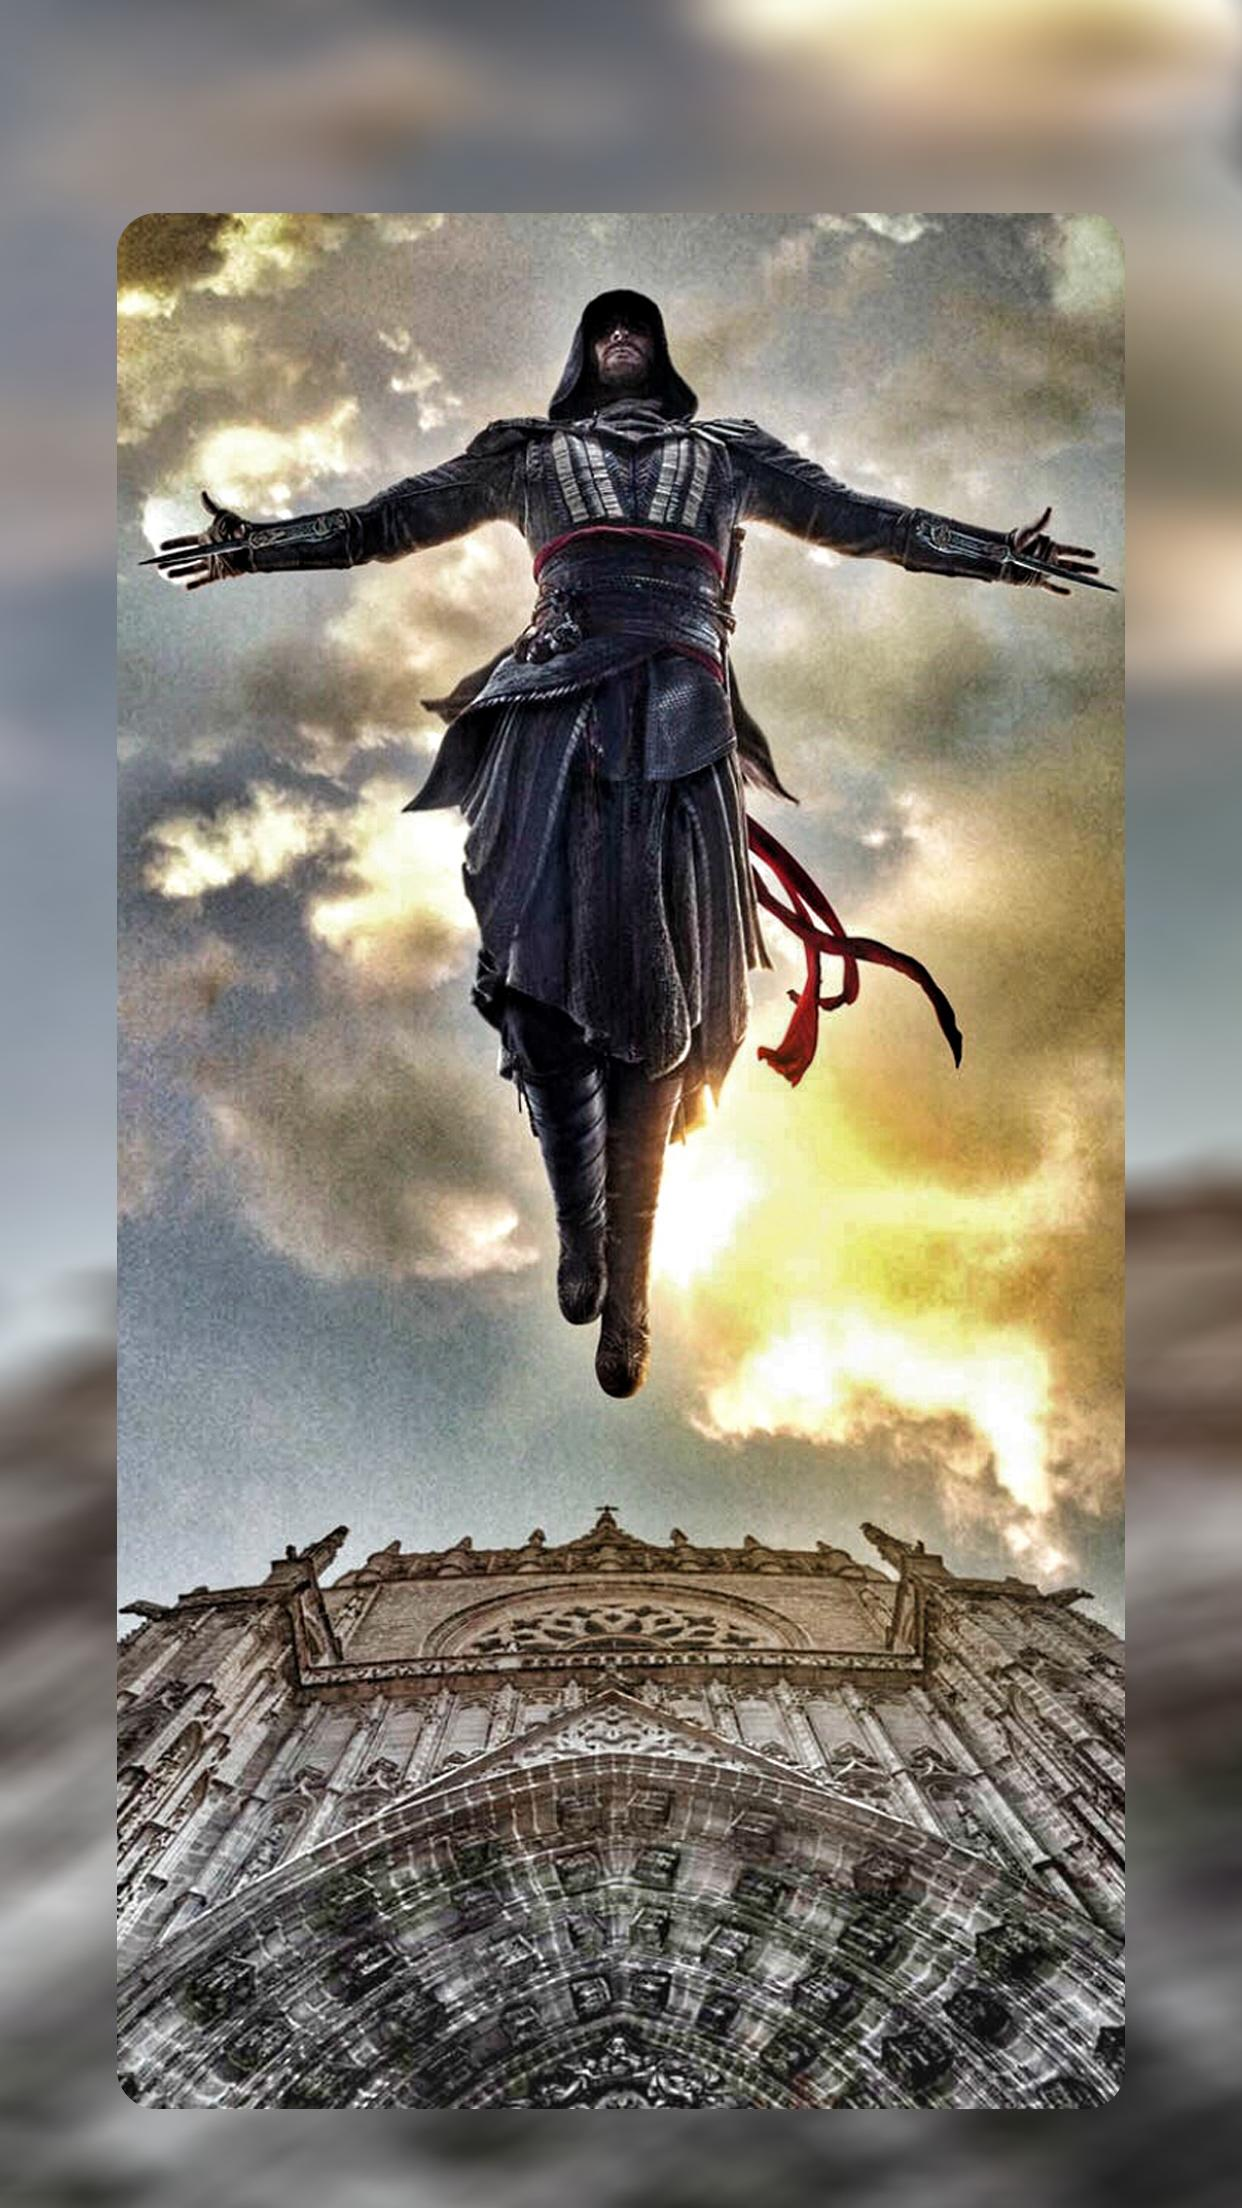 Assassin Creed Wallpaper 4k For Android Apk Download